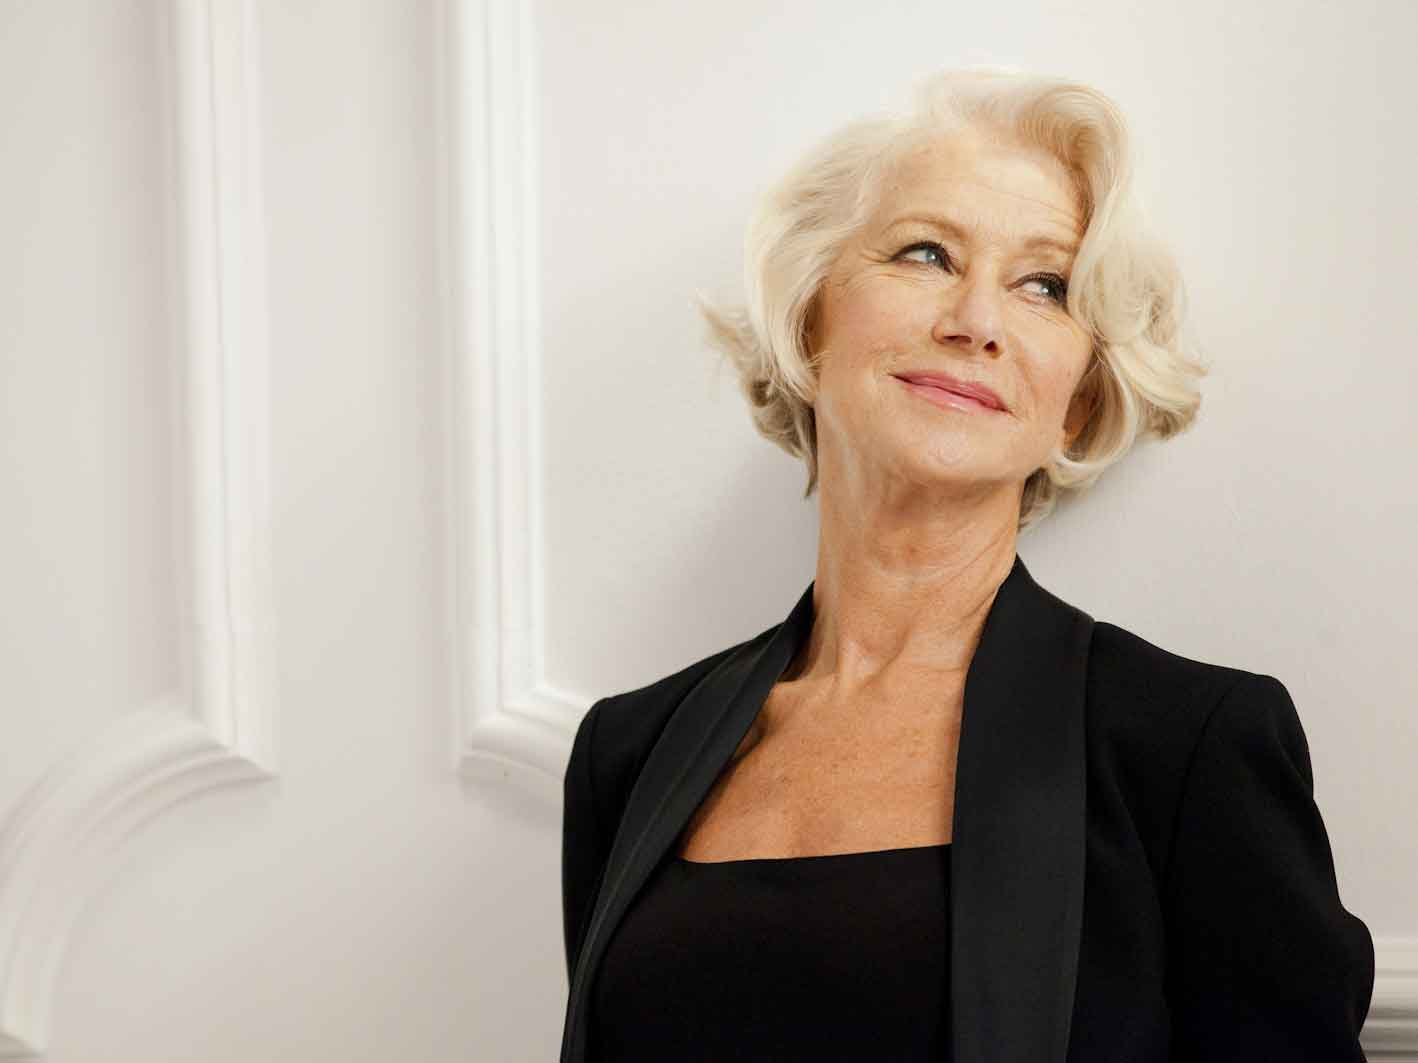 helen mirren explains why calling a woman sassy is just